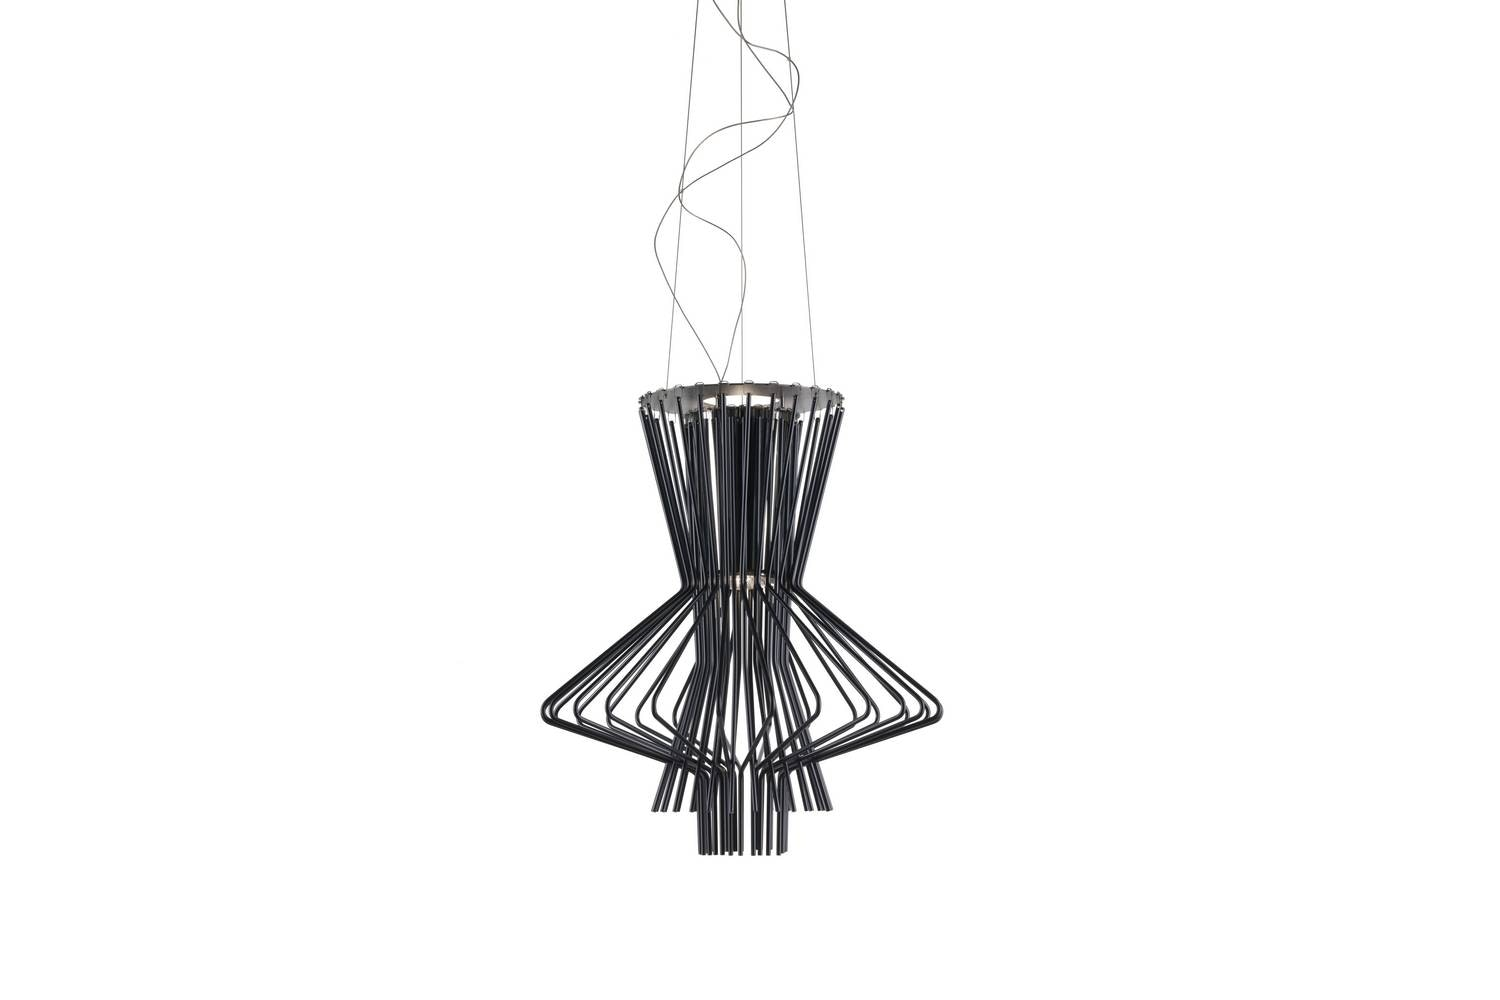 Allegretto Ritmico Suspension Lamp by Atelier Oi for Foscarini